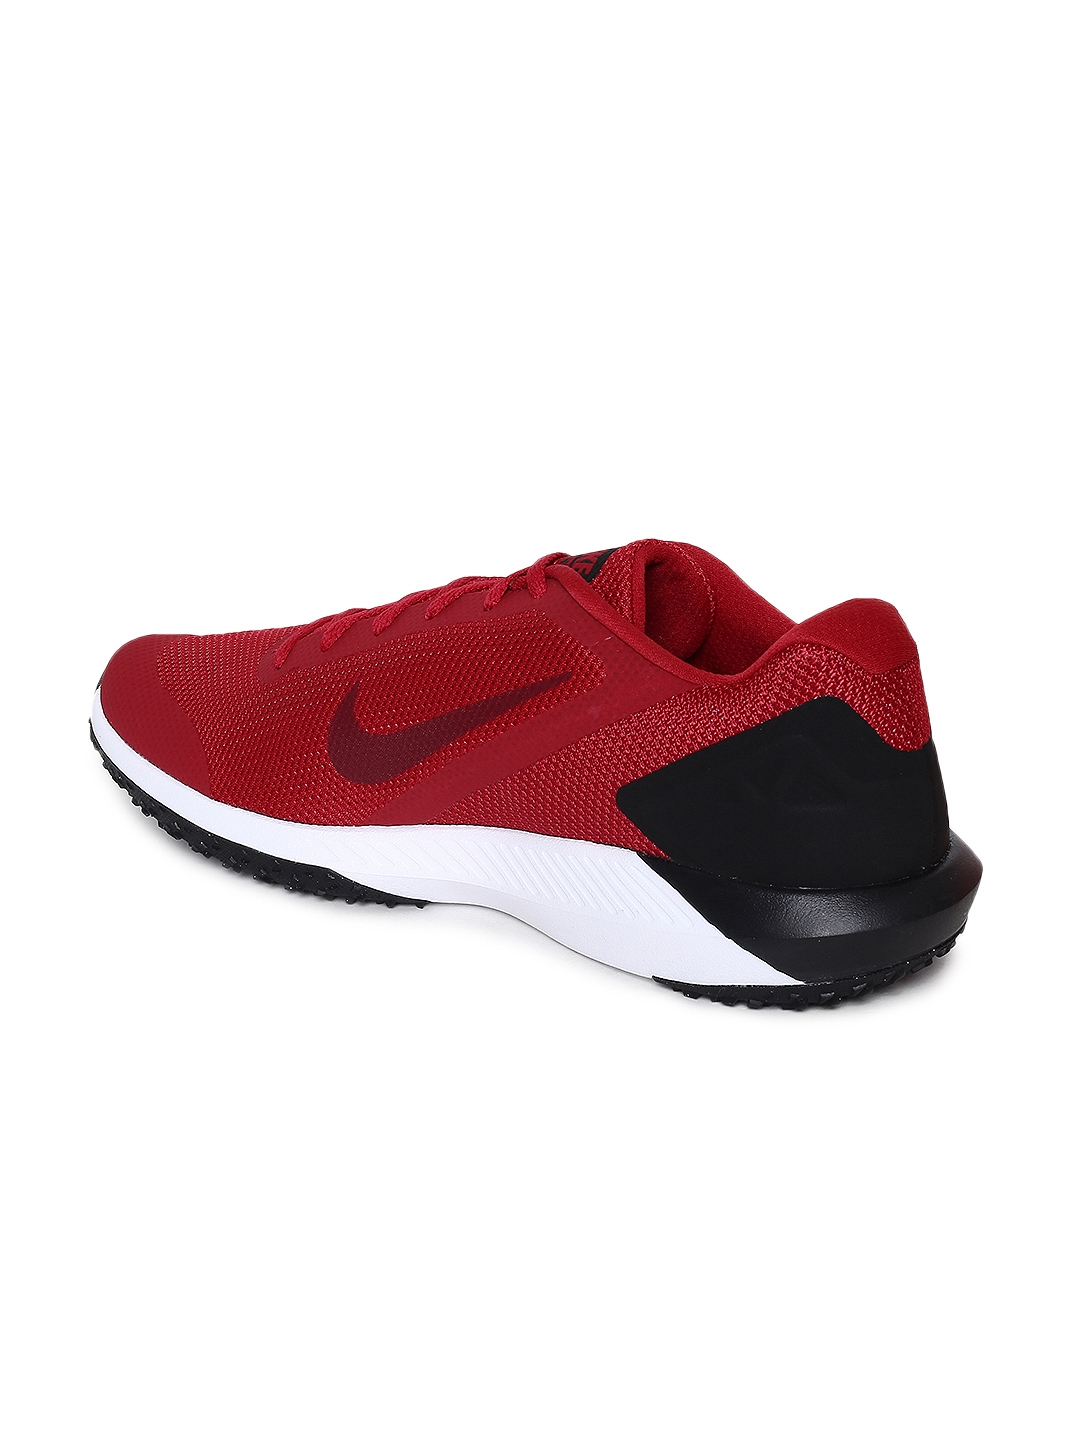 e4e848d6d829 Buy Nike Men Red RETALIATION TR 2 Training Shoes - Sports Shoes for ...